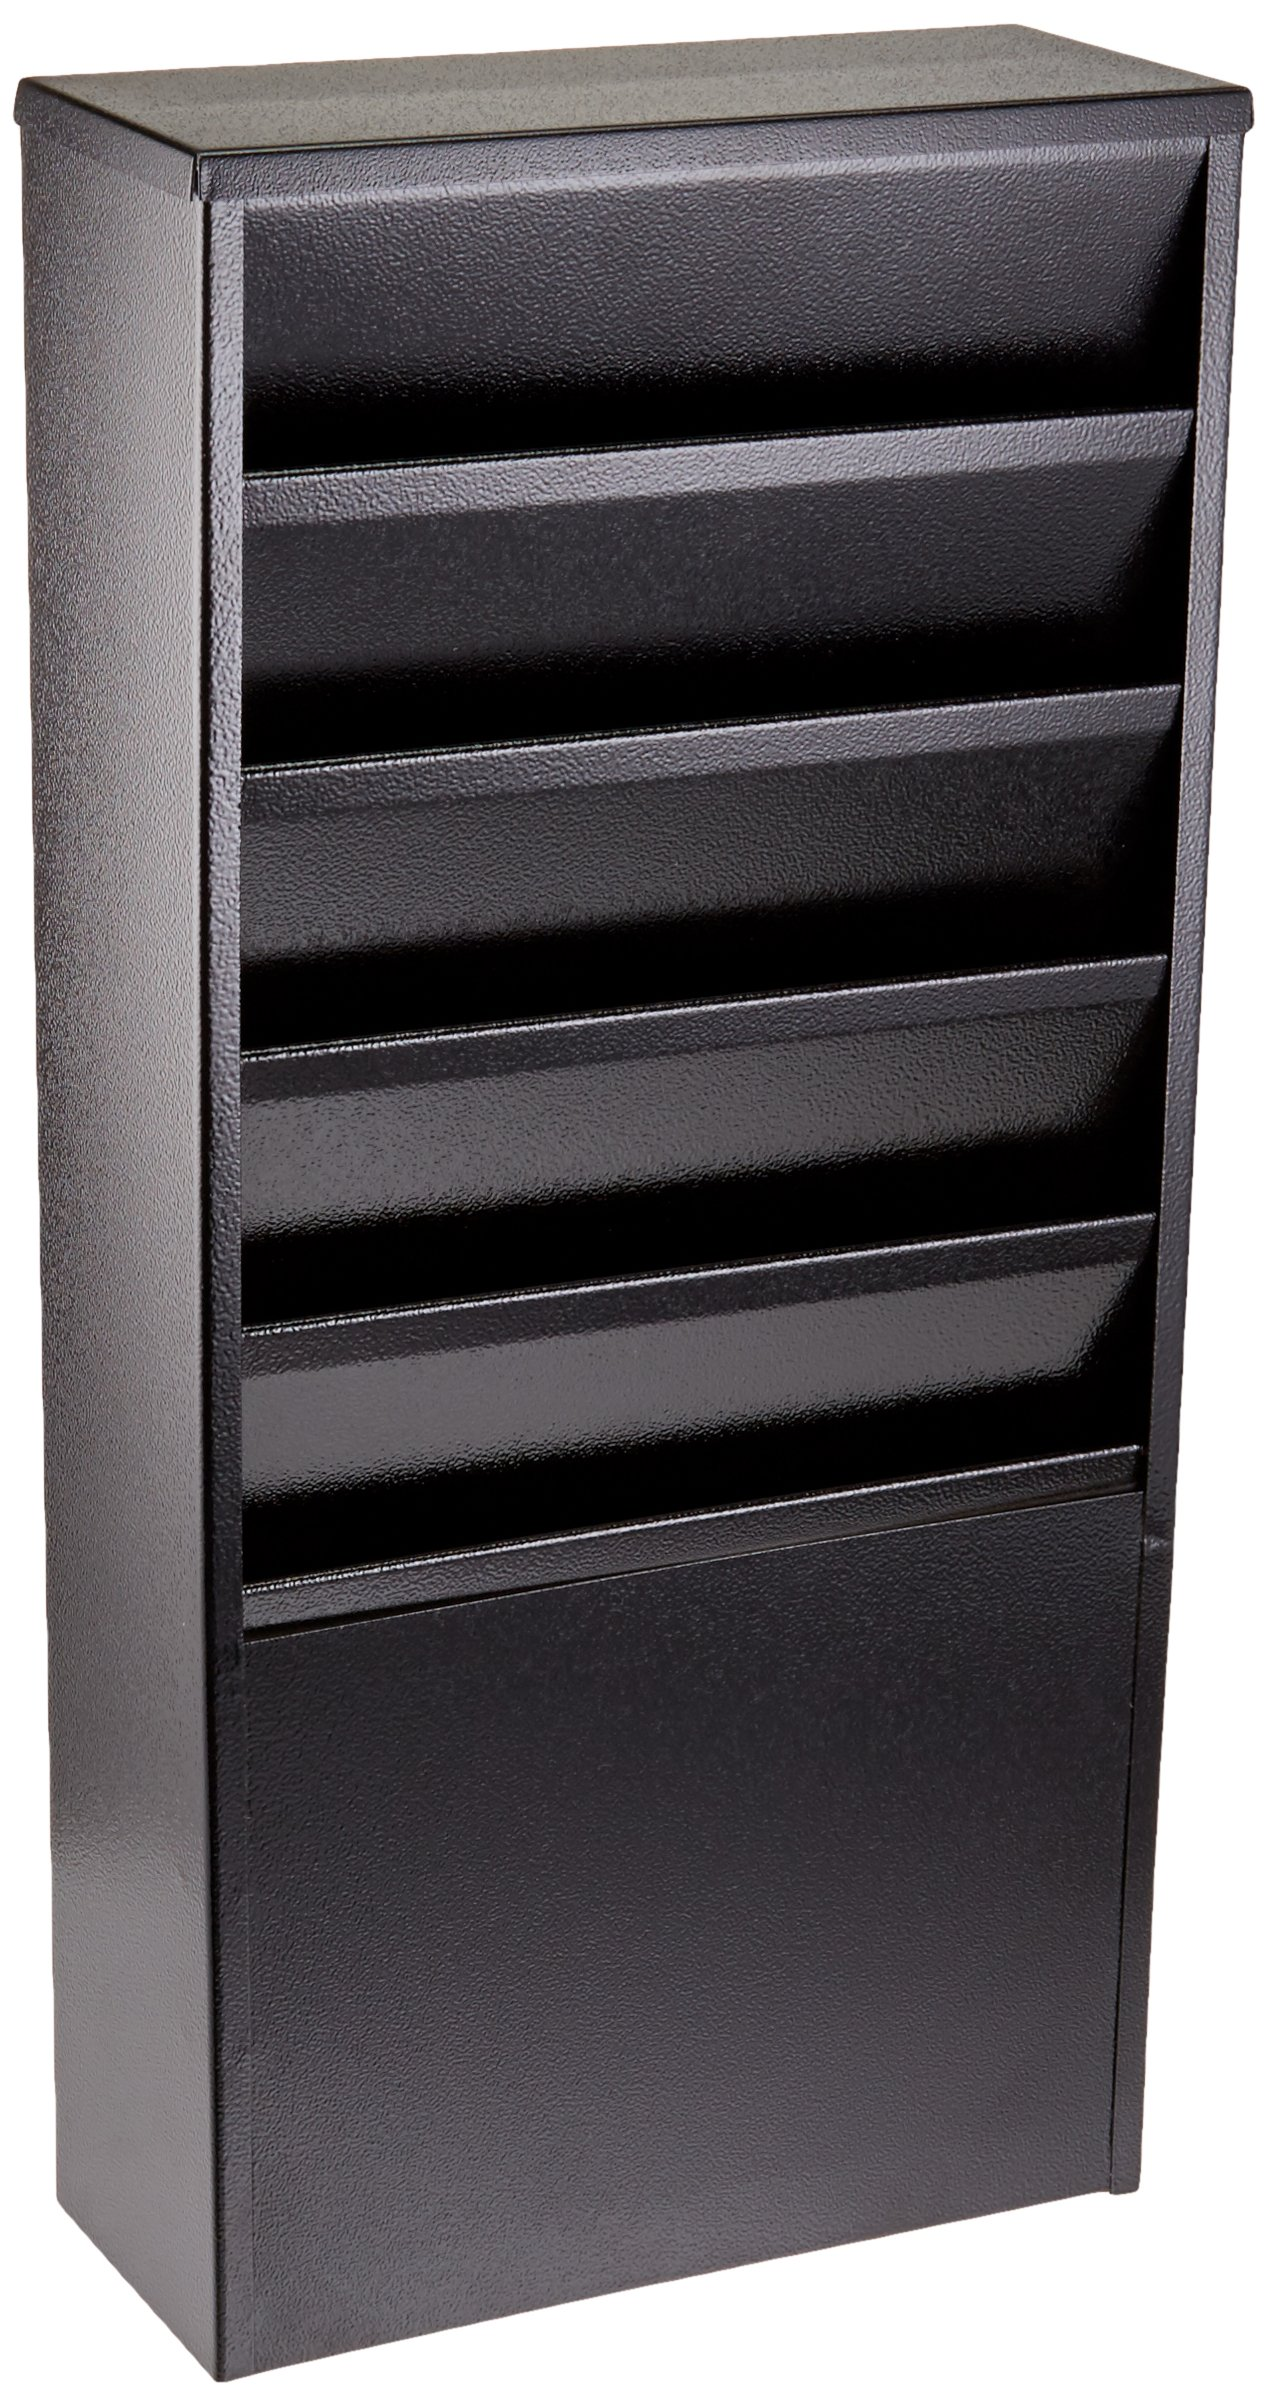 Buddy Products 5 Pocket Display Rack, Steel, 4 x 20.375 x 9.75 Inches, Black (0811-4) by Buddy Products